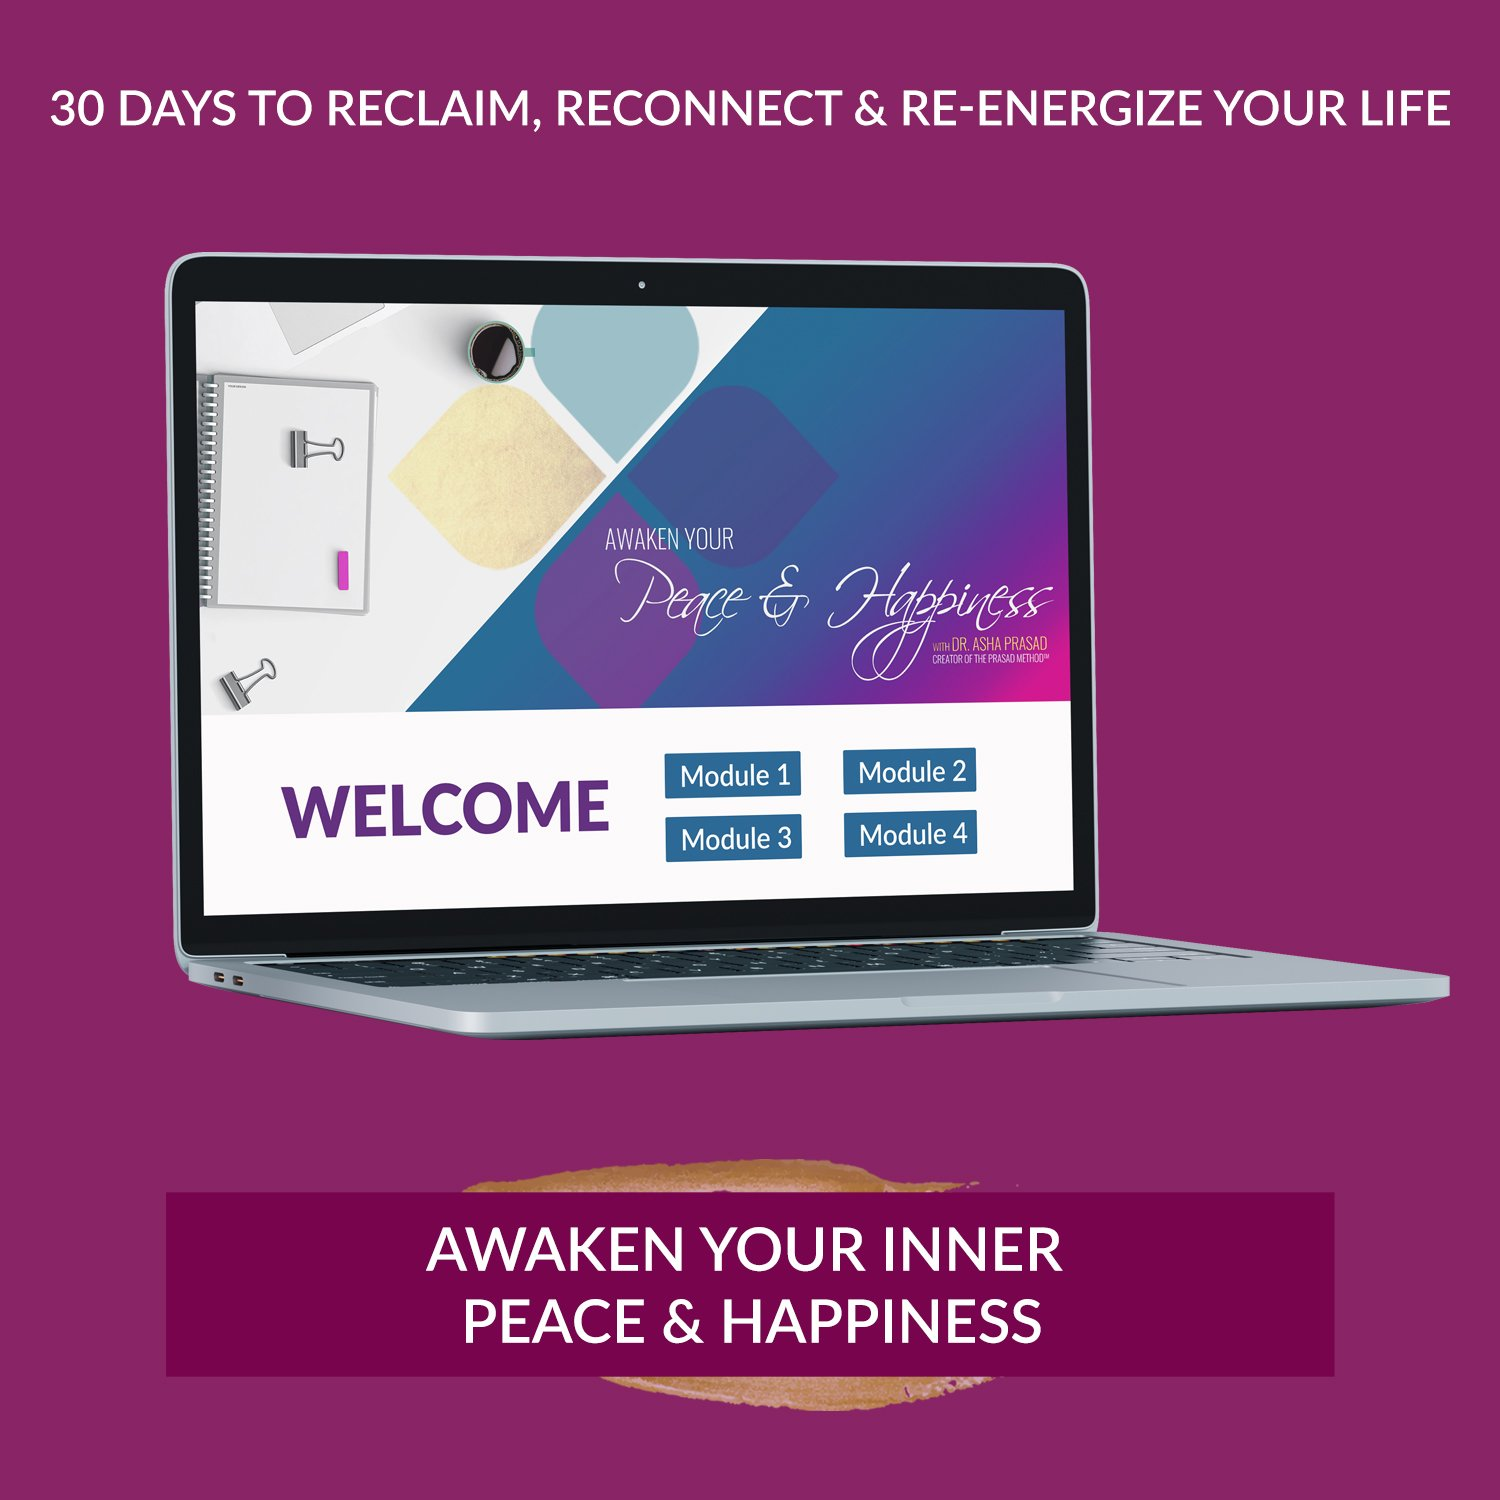 Dr. Asha Prasad Awaken Your Inner Peace and Happiness online course